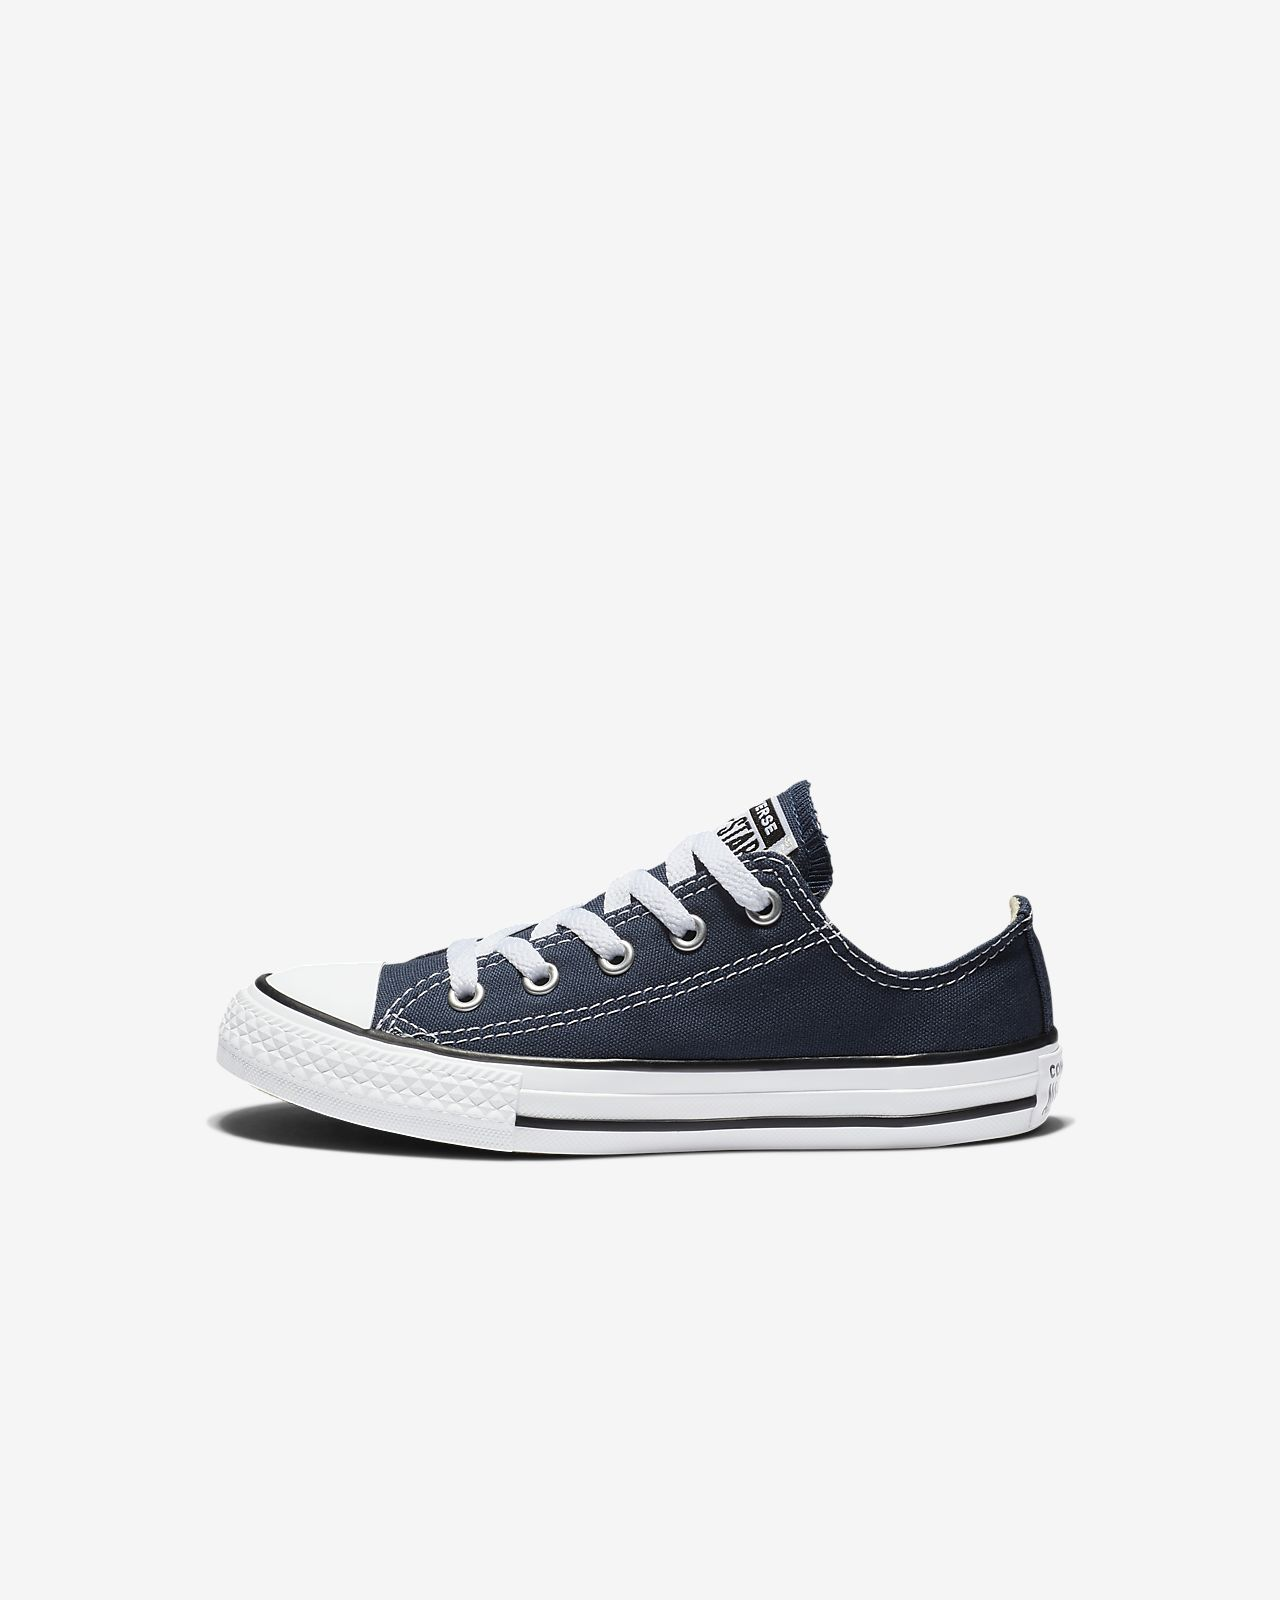 a5cfc961d890 Converse Chuck Taylor All Star Low Top (10.5c-3y) Little Kids  Shoe ...